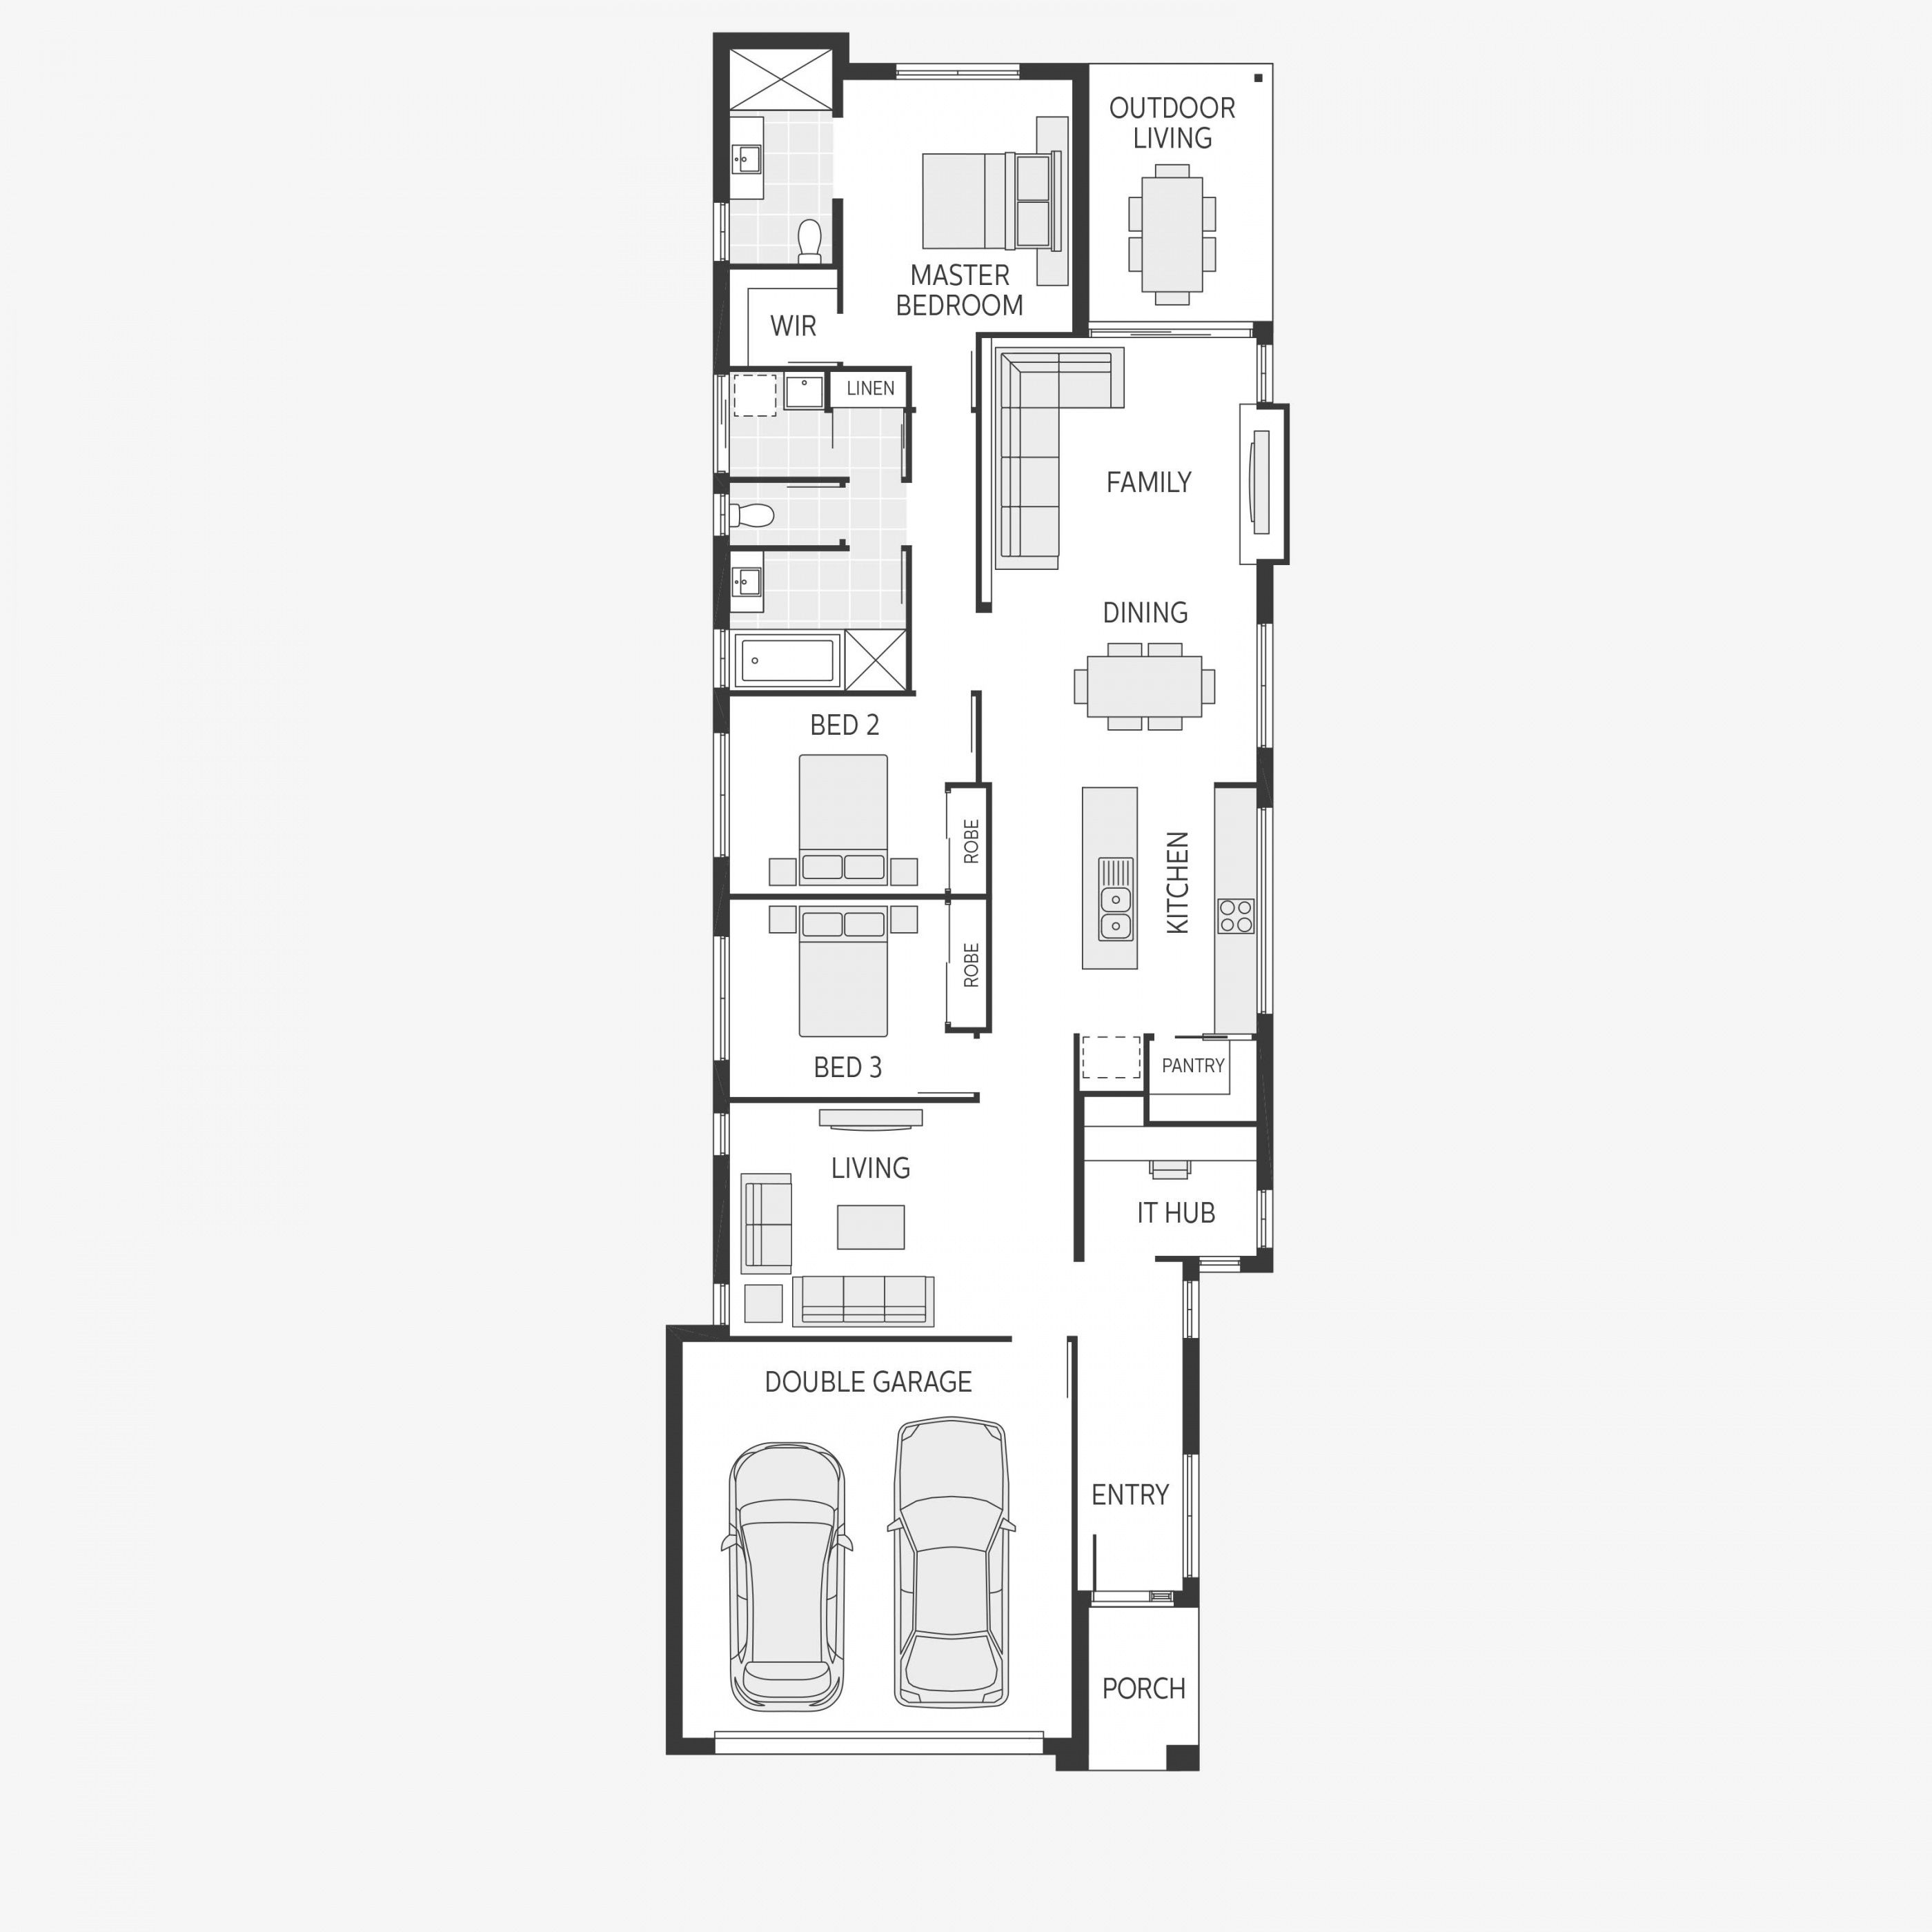 Home Design Floorplan Image Description In 2020 Narrow House